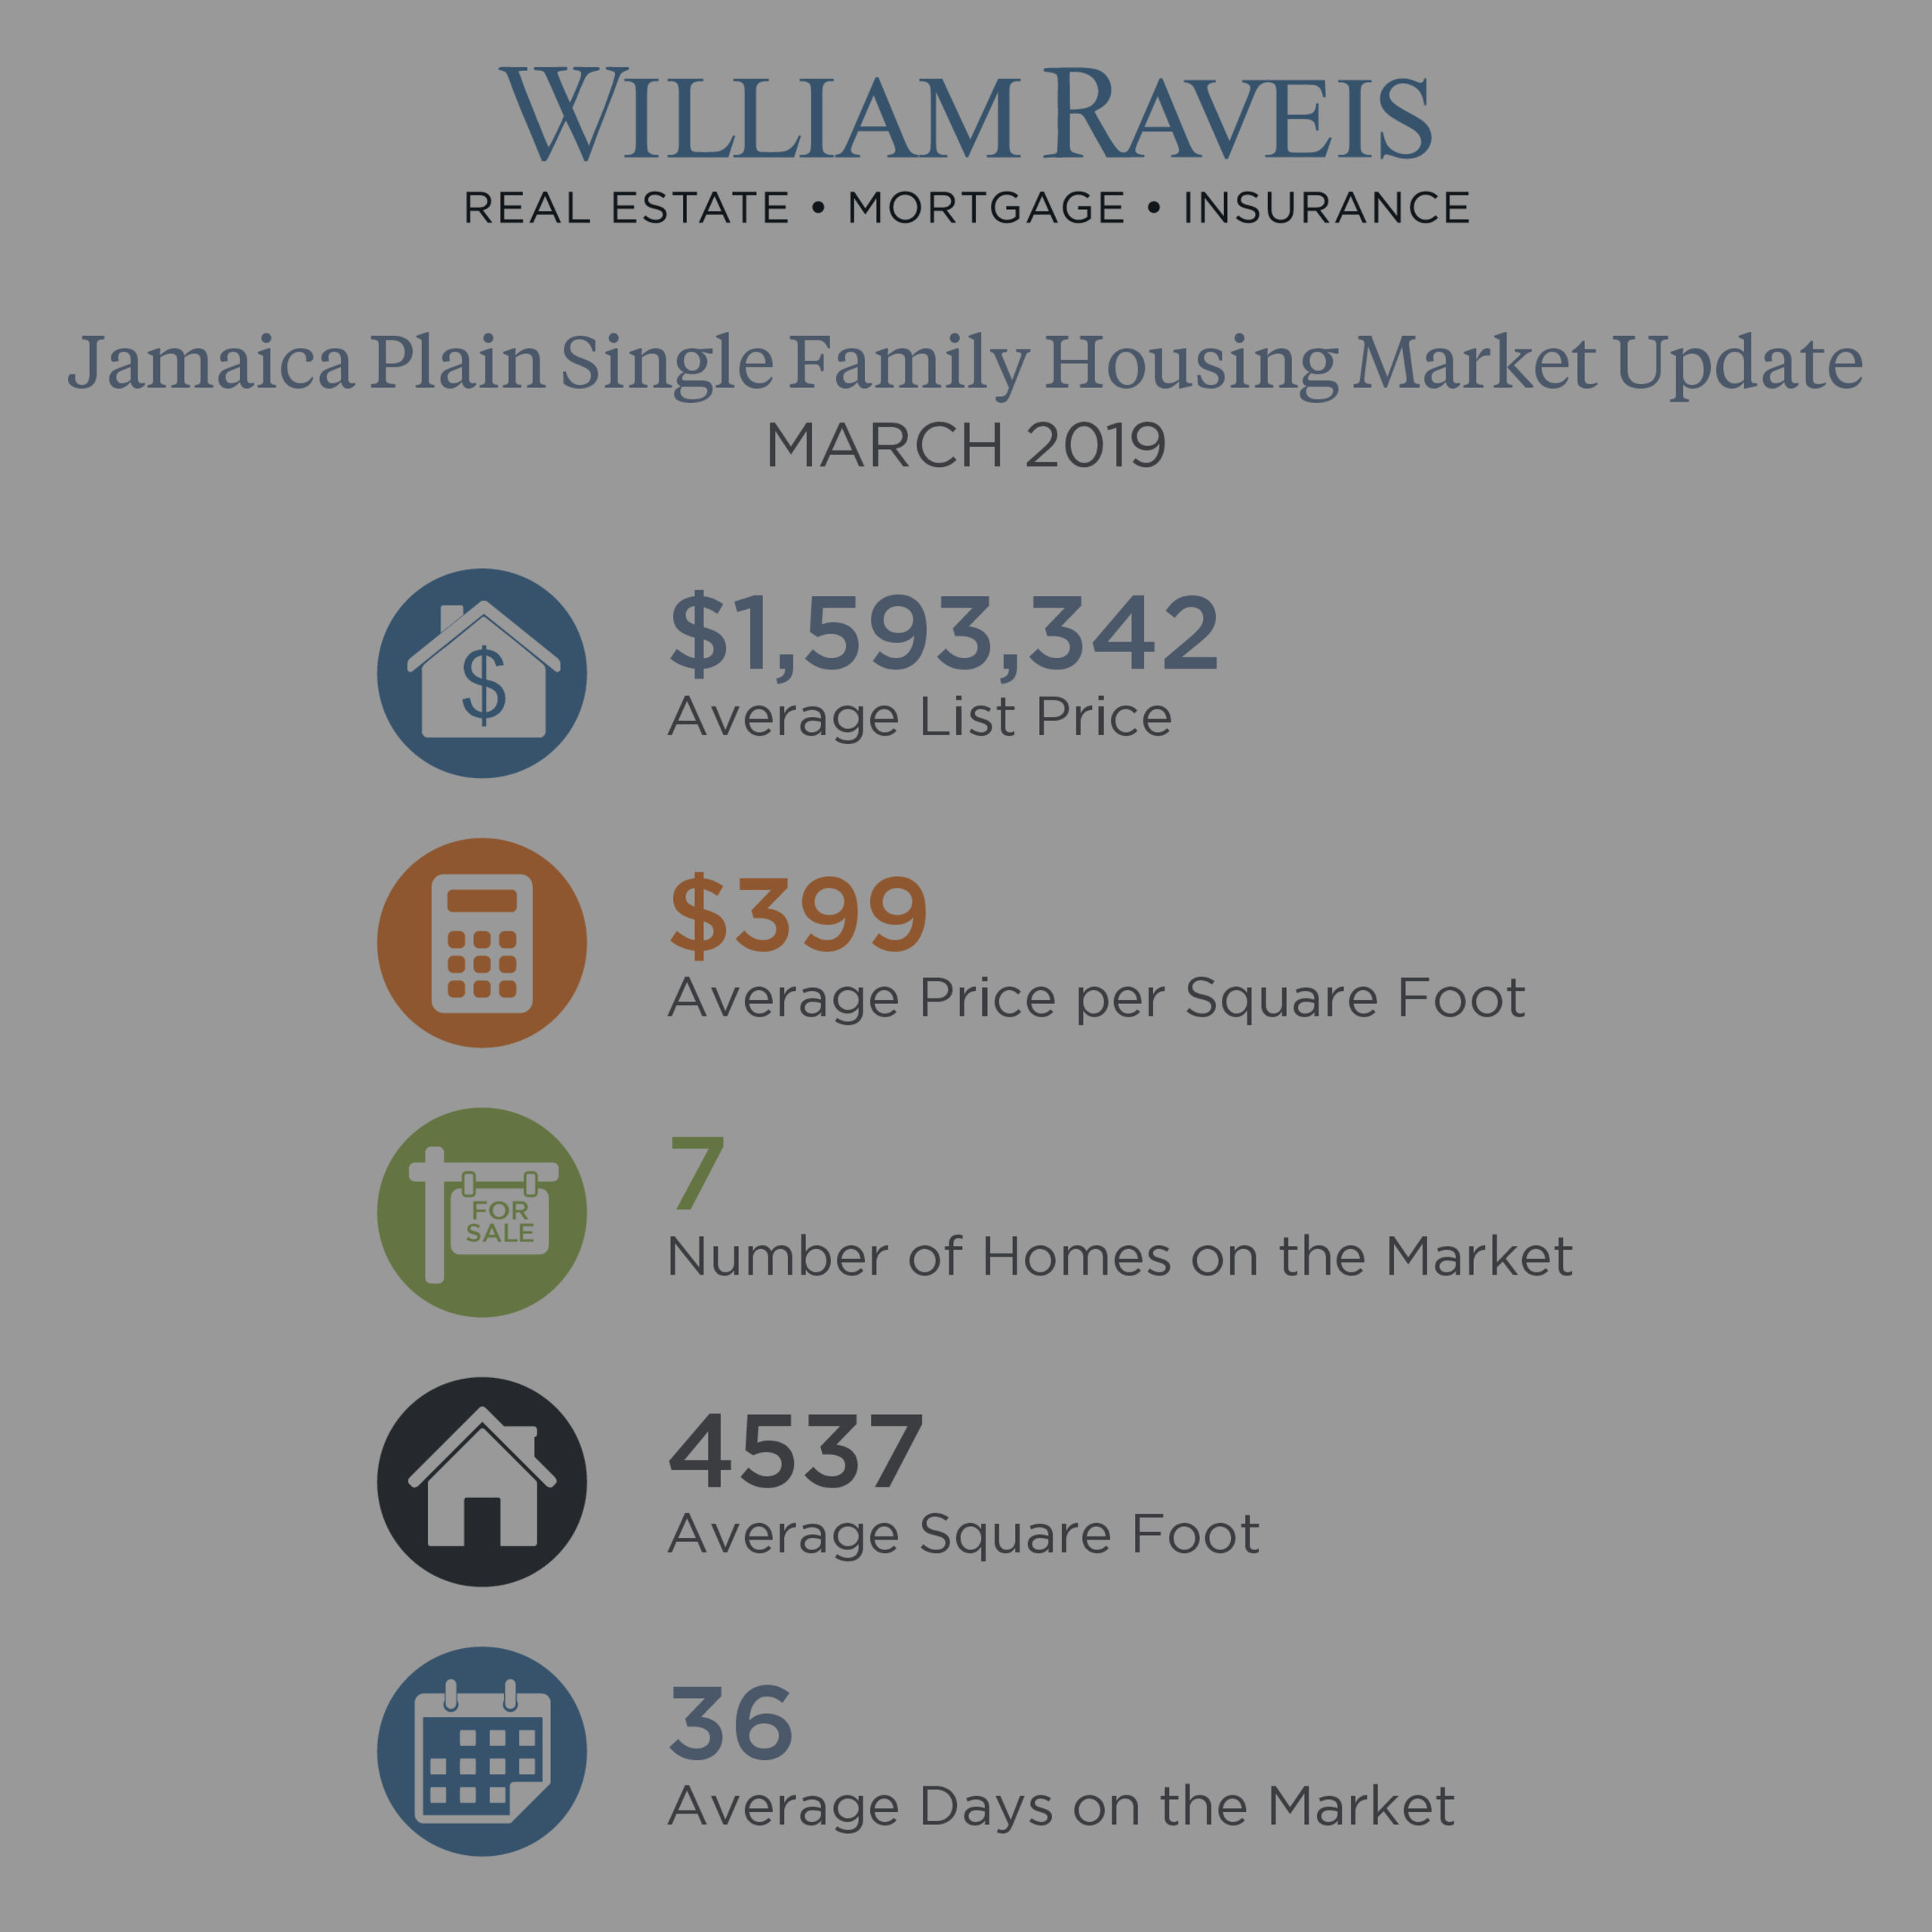 Jamaica Plain Housing Market Update March 2019 Condominium & Single Family Homes